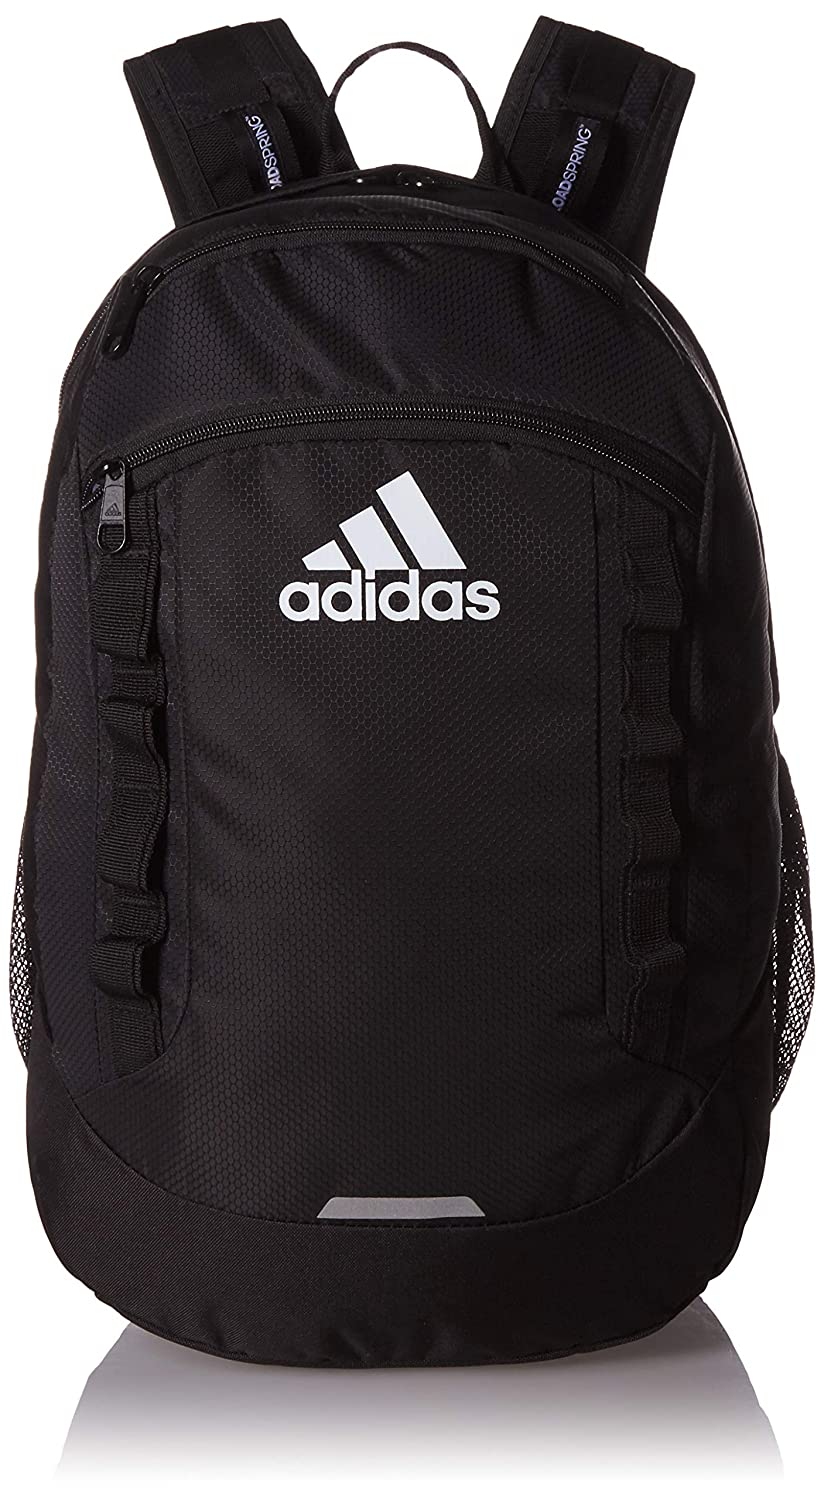 9b333ba53537 adidas Excel Backpack, Black, One Size: Amazon.ca: Sports & Outdoors